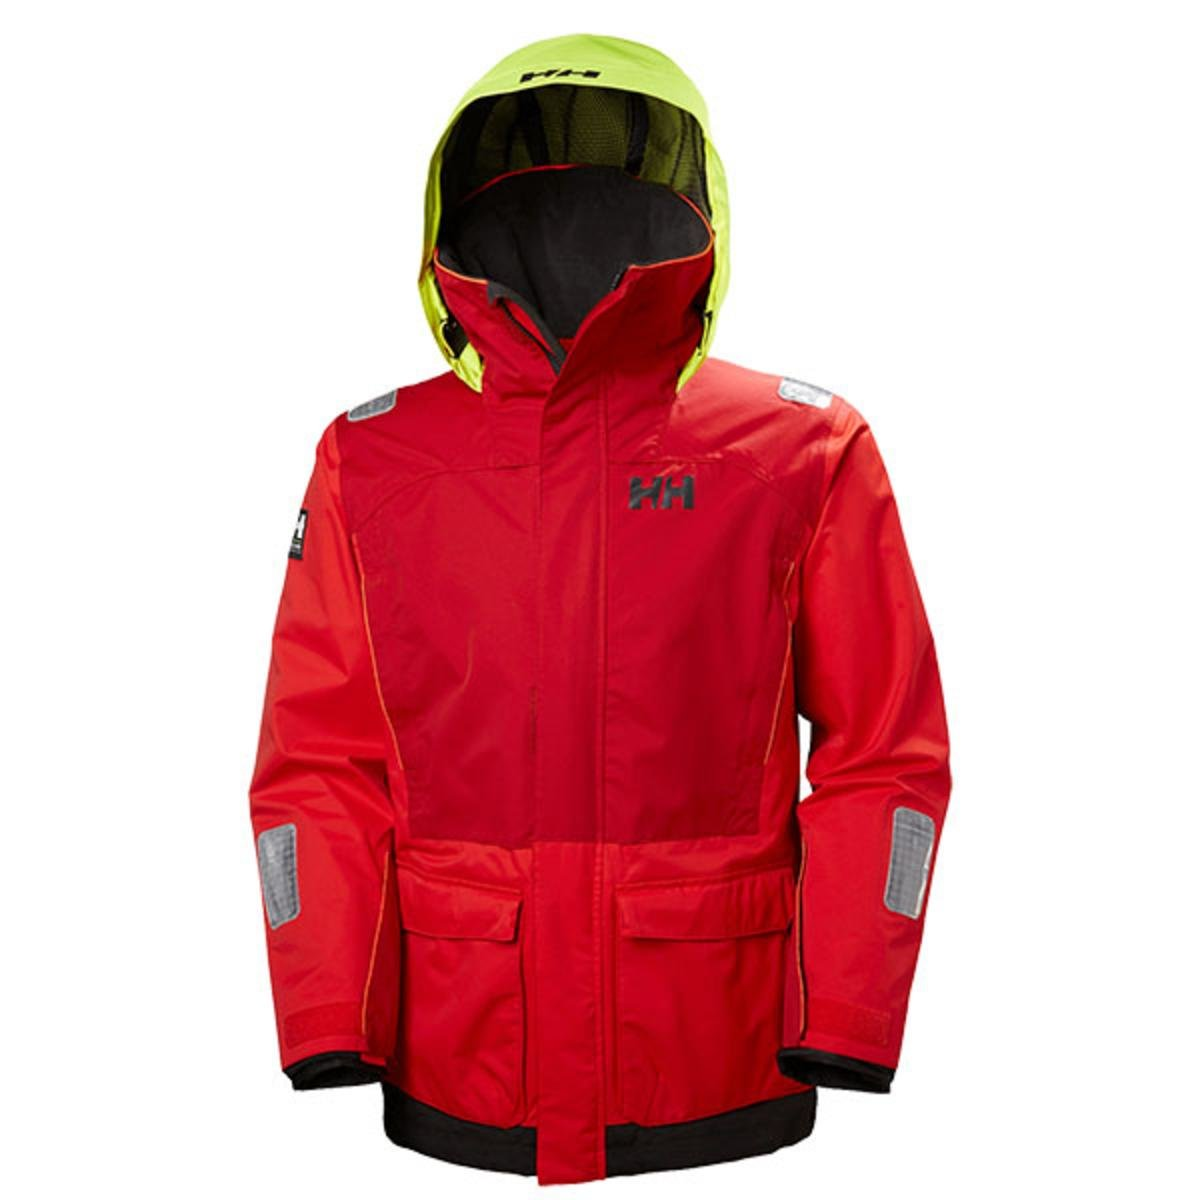 Helly Hansen Men s Newport Coastal Jacket - The Warming Store a0aeea7955e